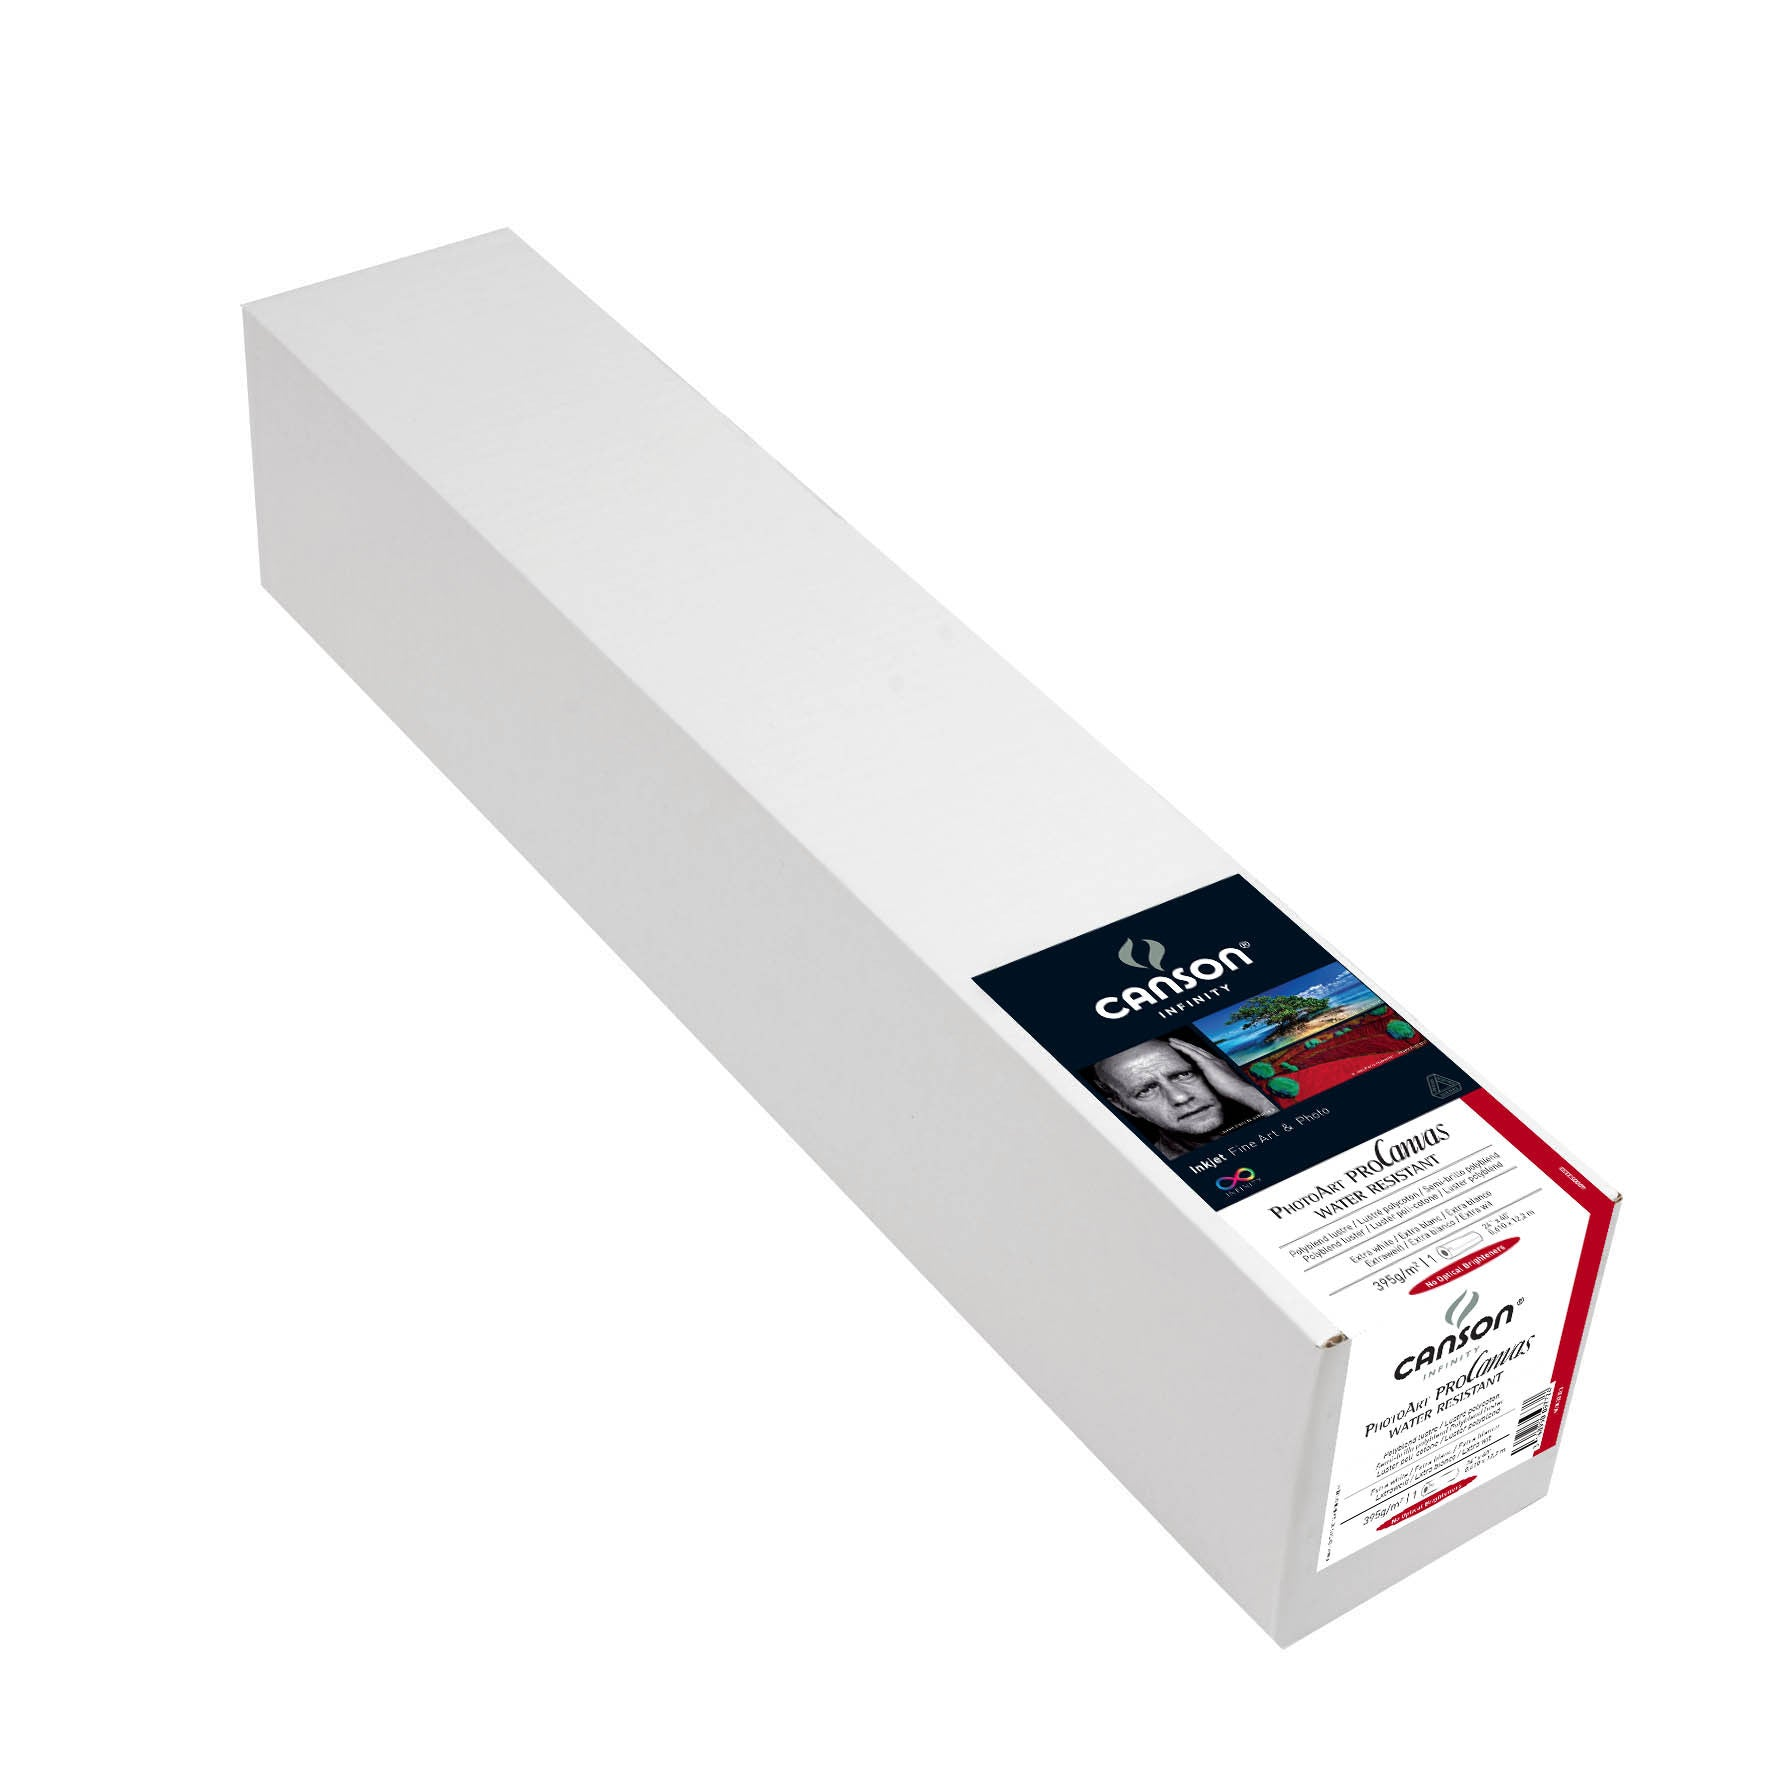 "Canson Infinity PhotoArt Pro Canvas WR Luster - 395gsm - 24""x40' roll - Wall Your Photos"